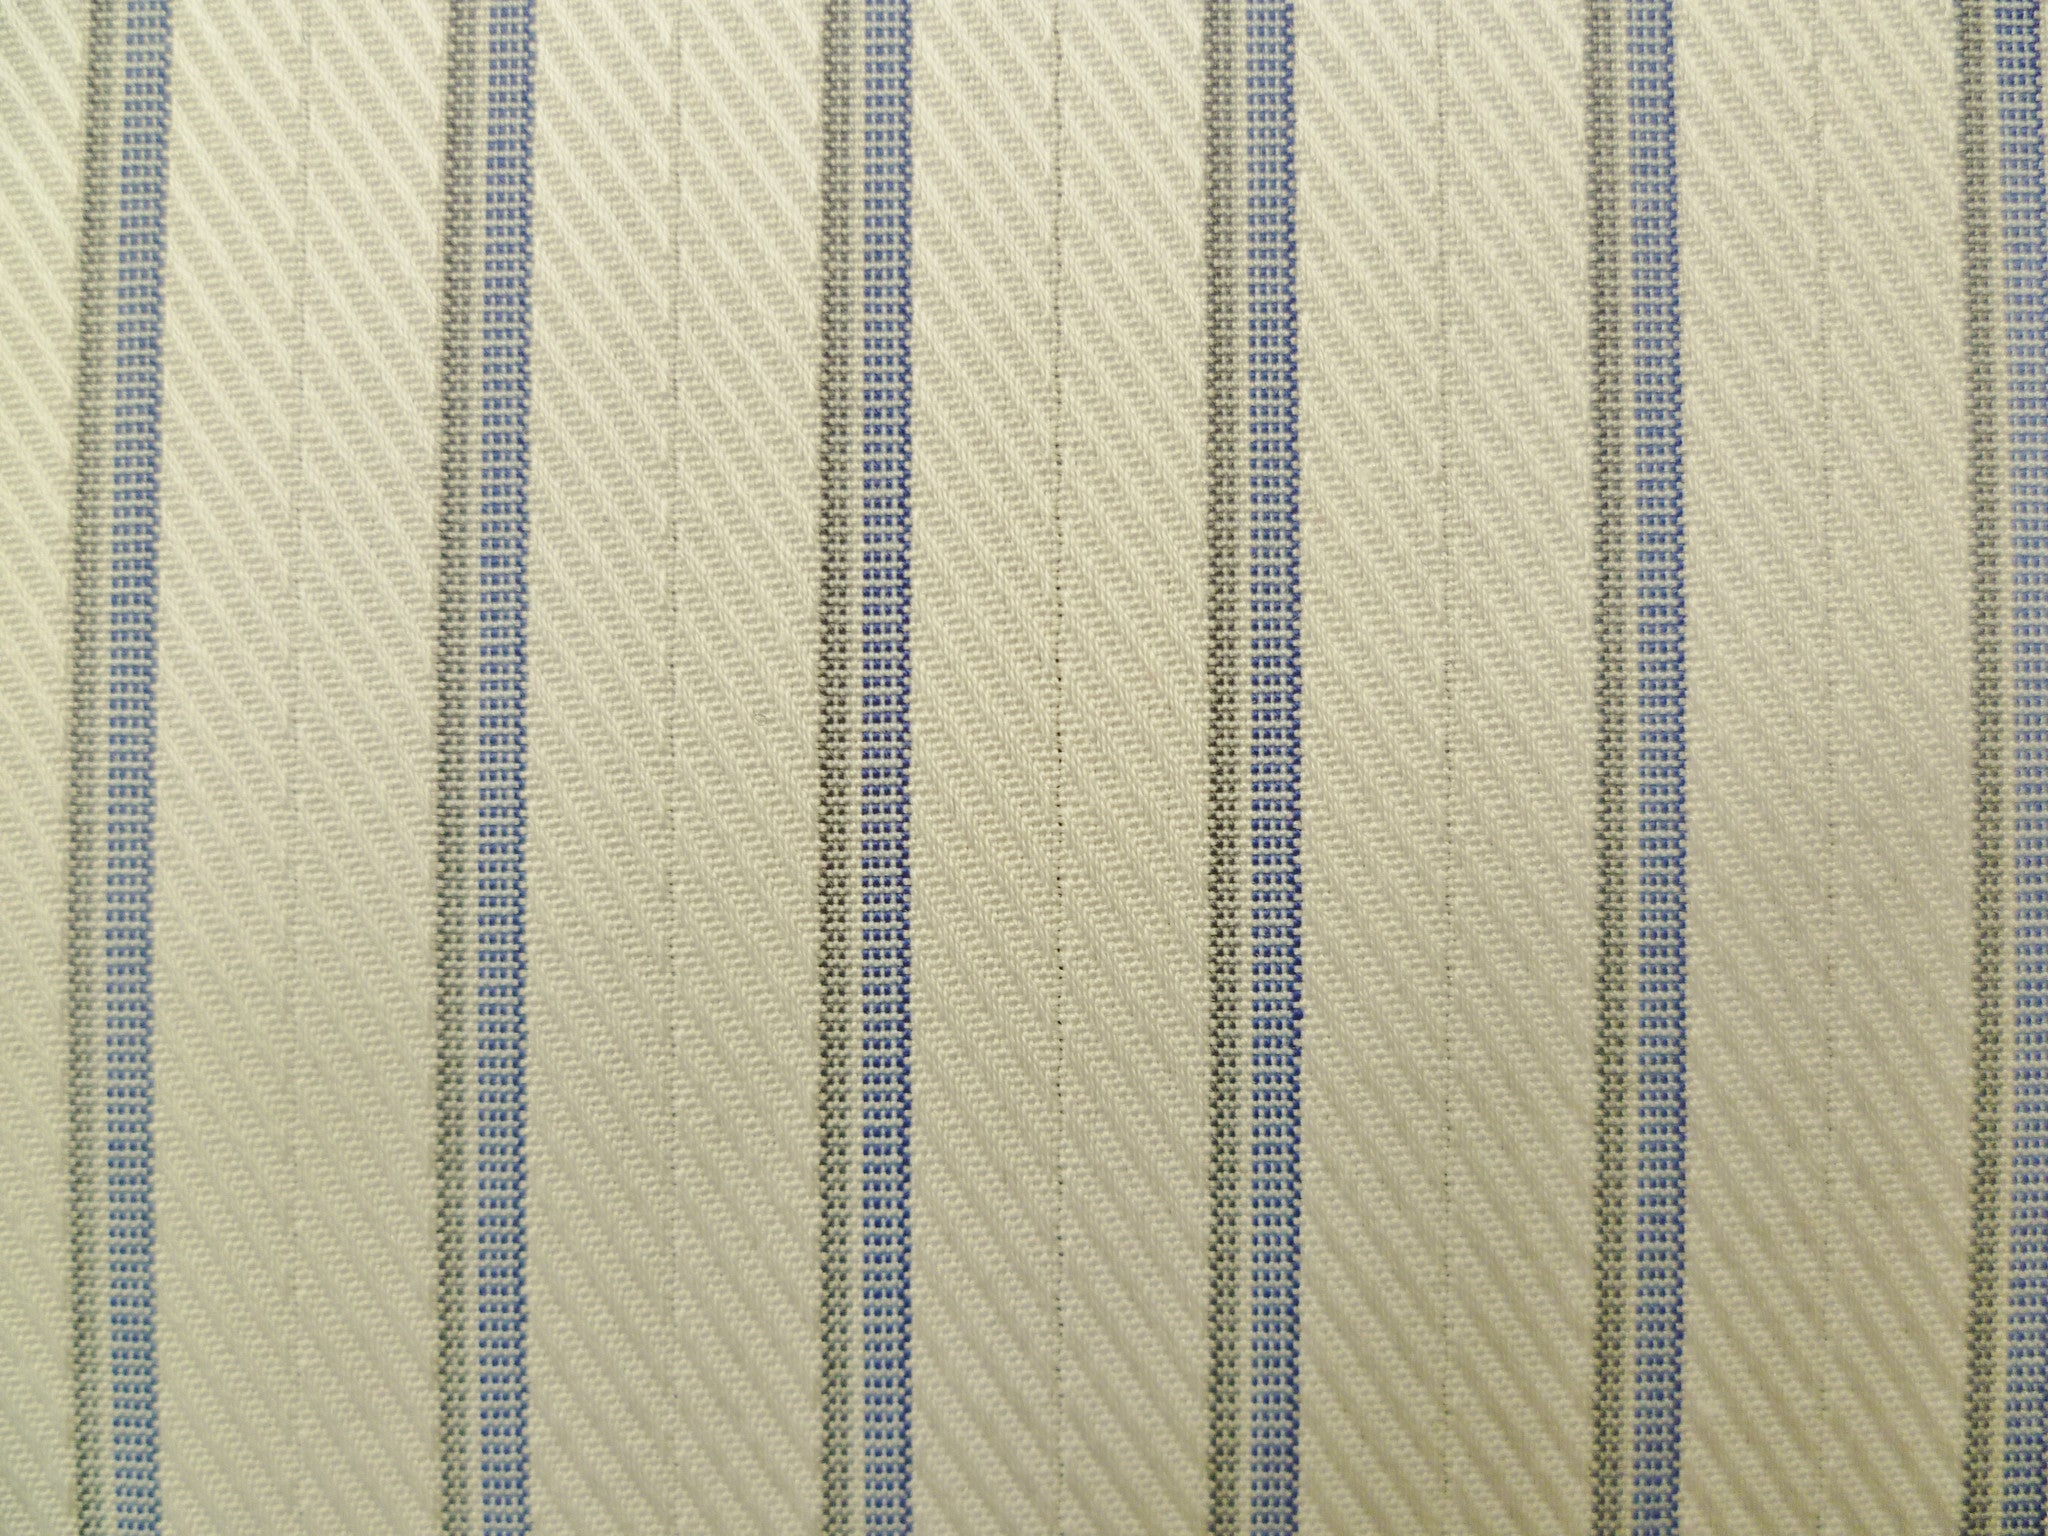 Ocean Blue, Grey and White Twill Striped Cotton